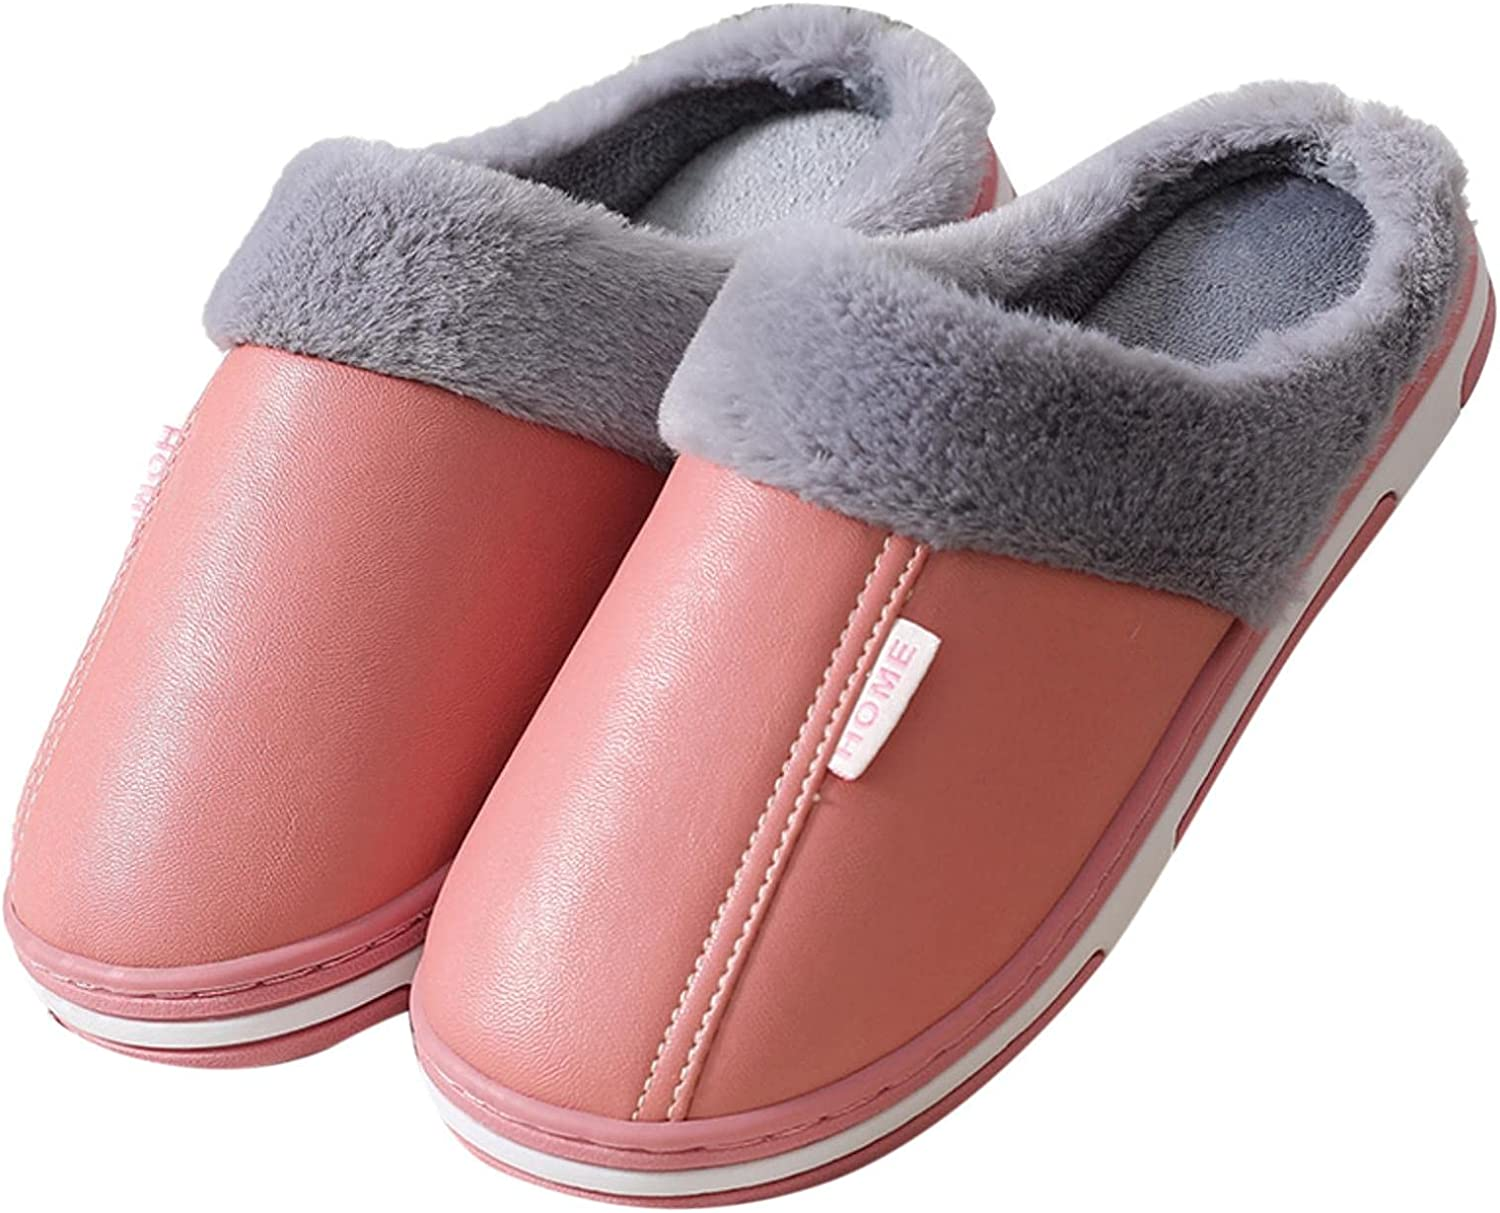 House Slippers for Women,Womens Fuzzy Slippers Memory Foam Fluffy Soft Warm House Slippers Cozy Plush Indoor Outdoor